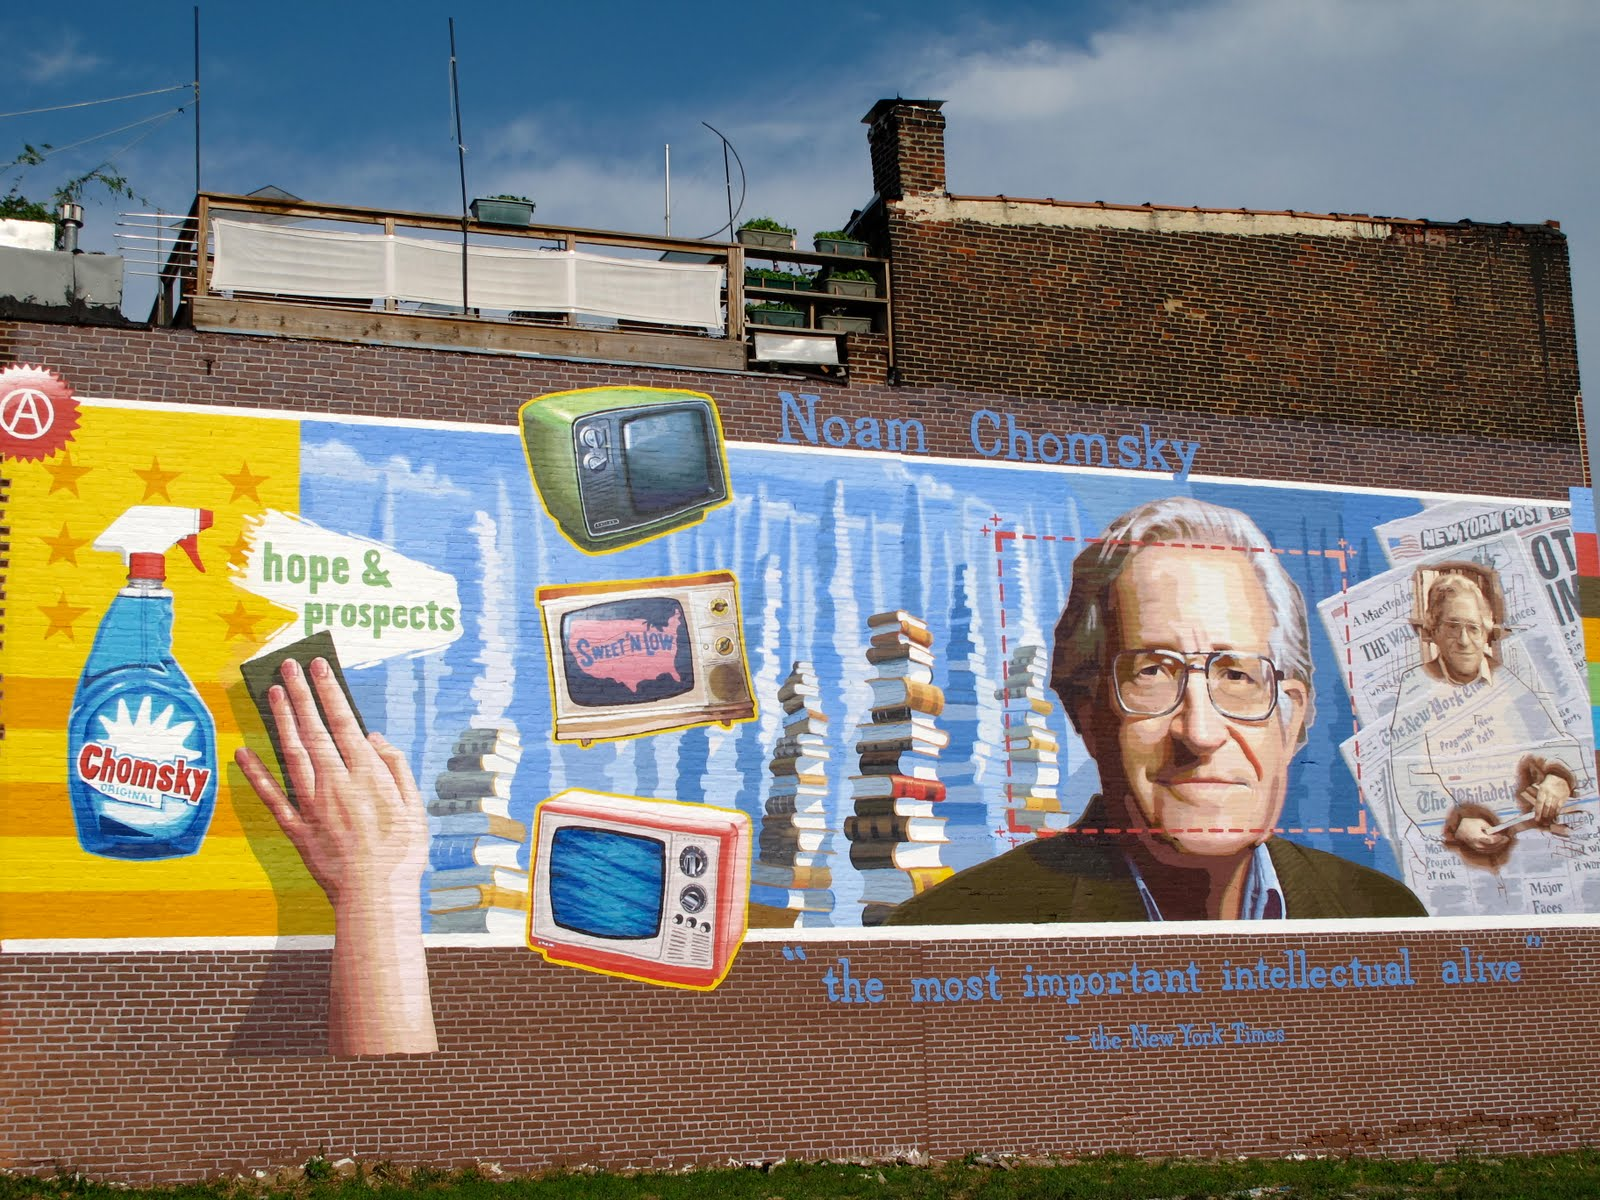 noam chomsky and the public intellectual in turbulent times by henry a giroux noam chomsky